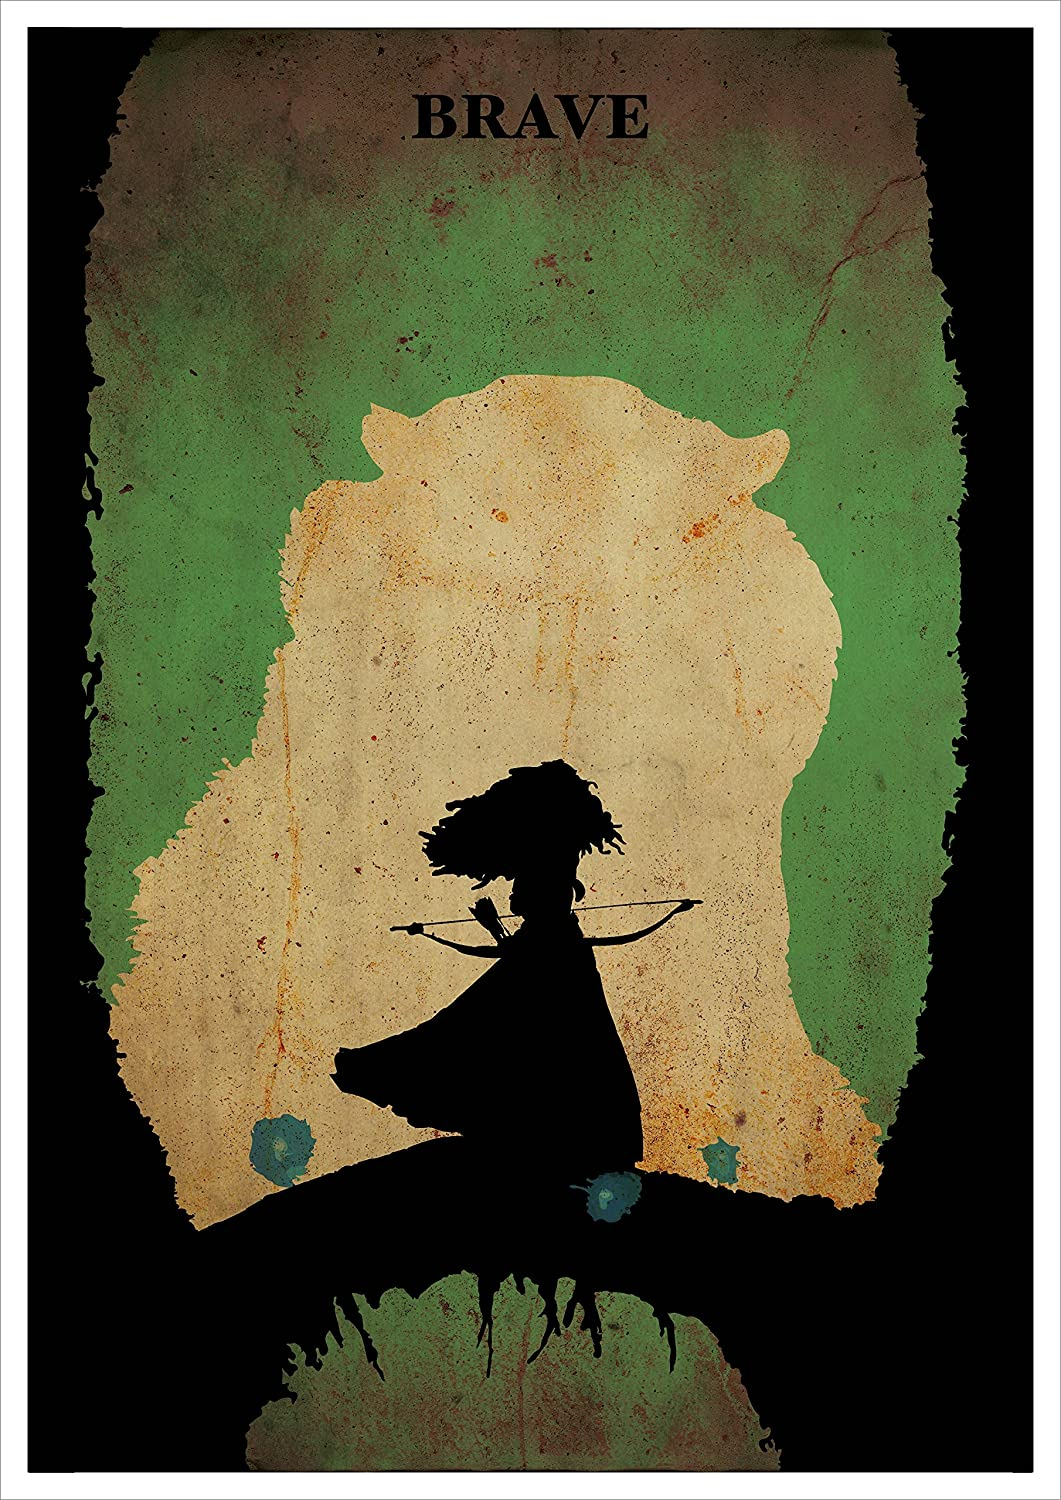 Amazon.com: Brave Minimalist Poster Disney and Pixar Animation ...